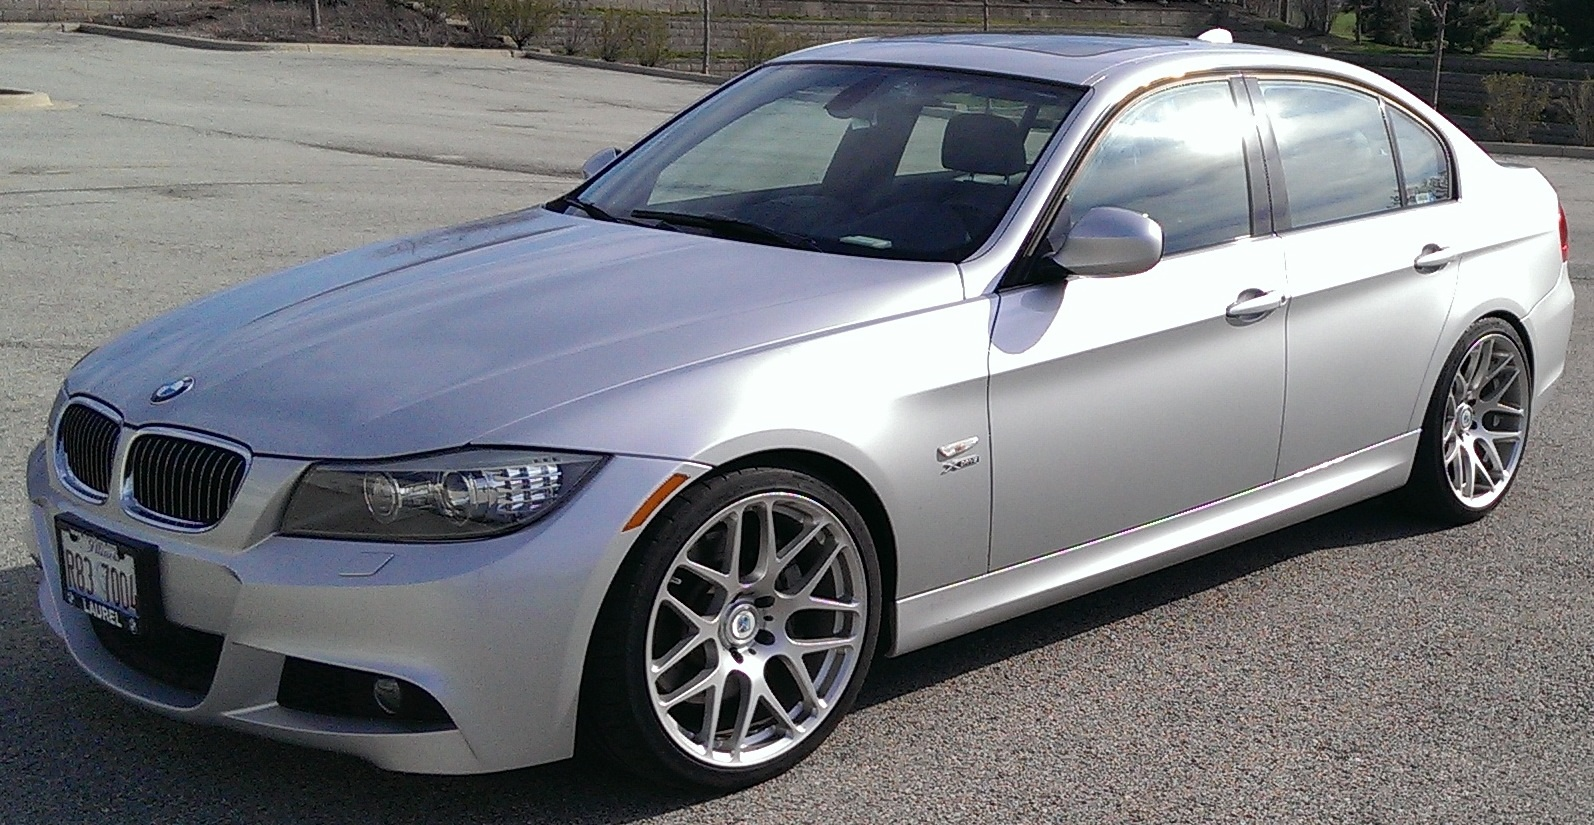 Wtt 2010 E90 Bmw 335xi M Sport 6mt Cpo For E90 M3